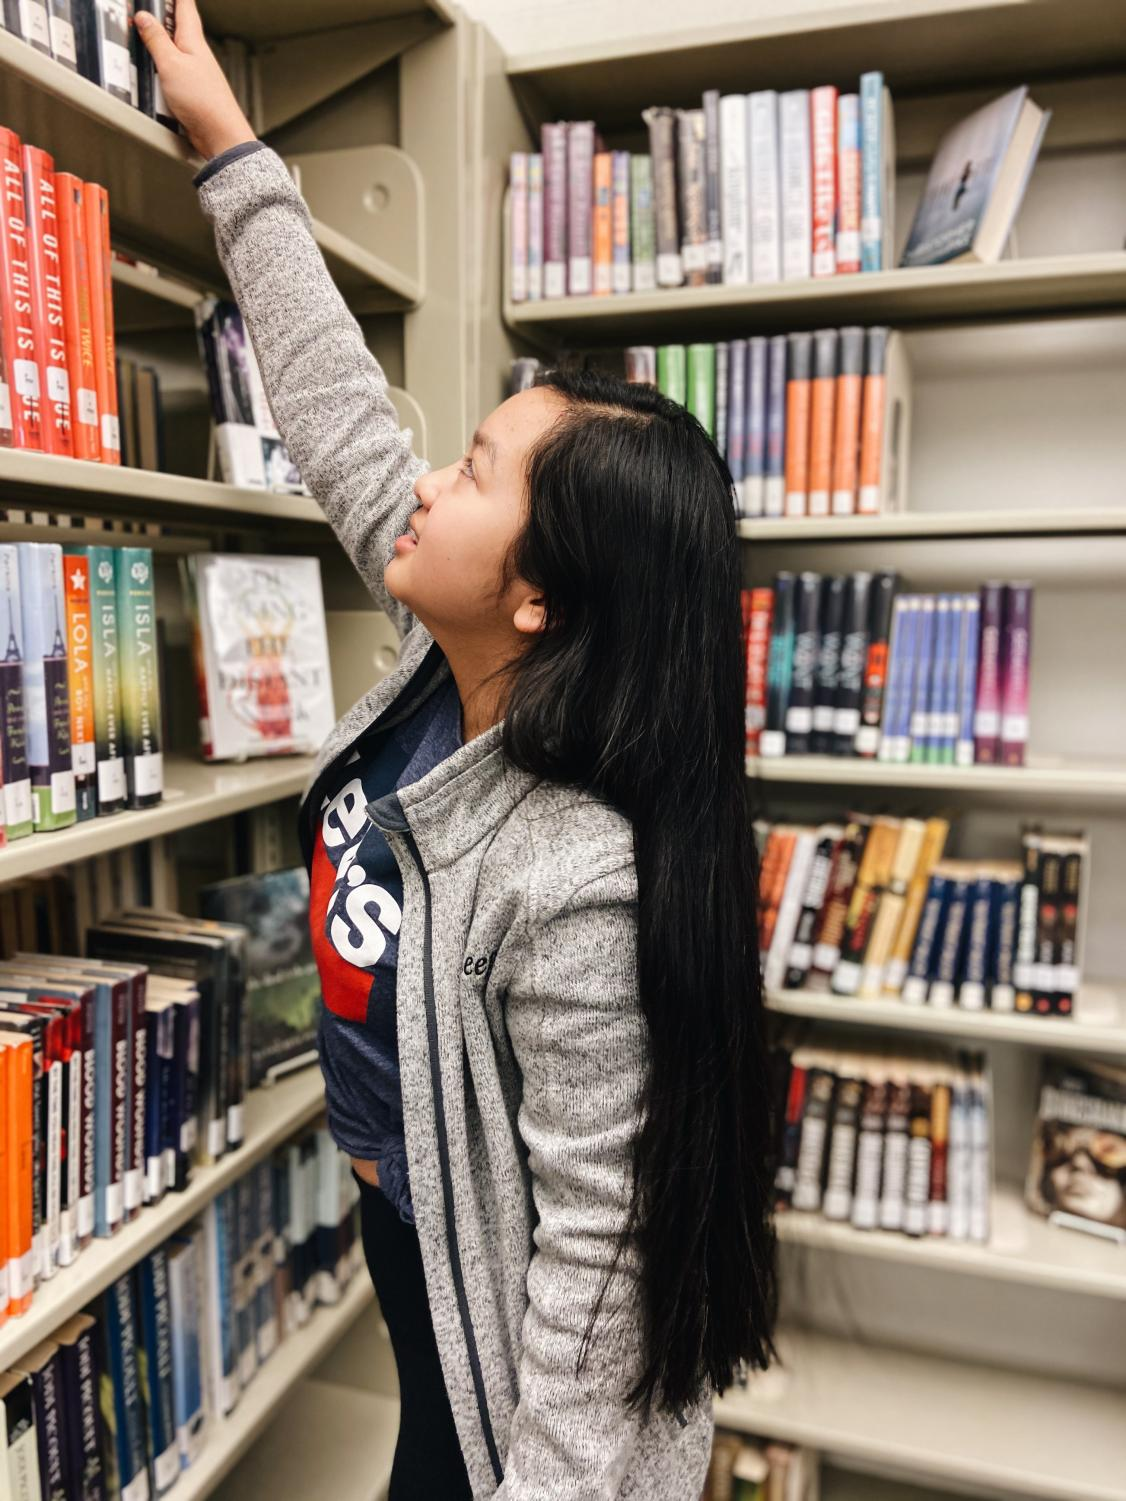 Kevy+Huynh+%E2%80%9823+searches+the+fiction+section+of+West+High+Library+for+her+next+read.+%28portrait%29